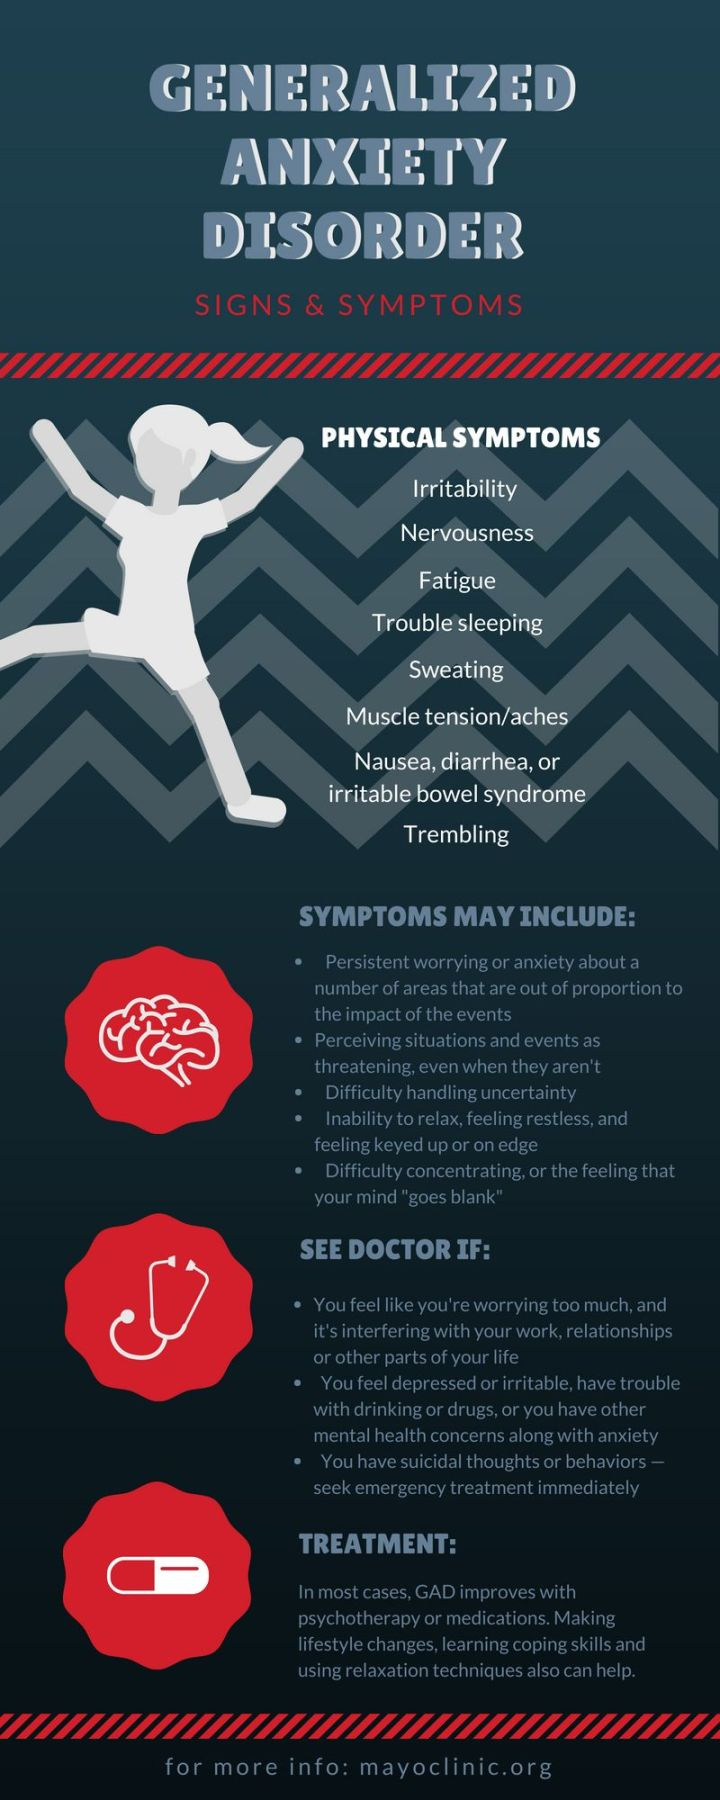 What does anxiety look like? Signs & Symptoms